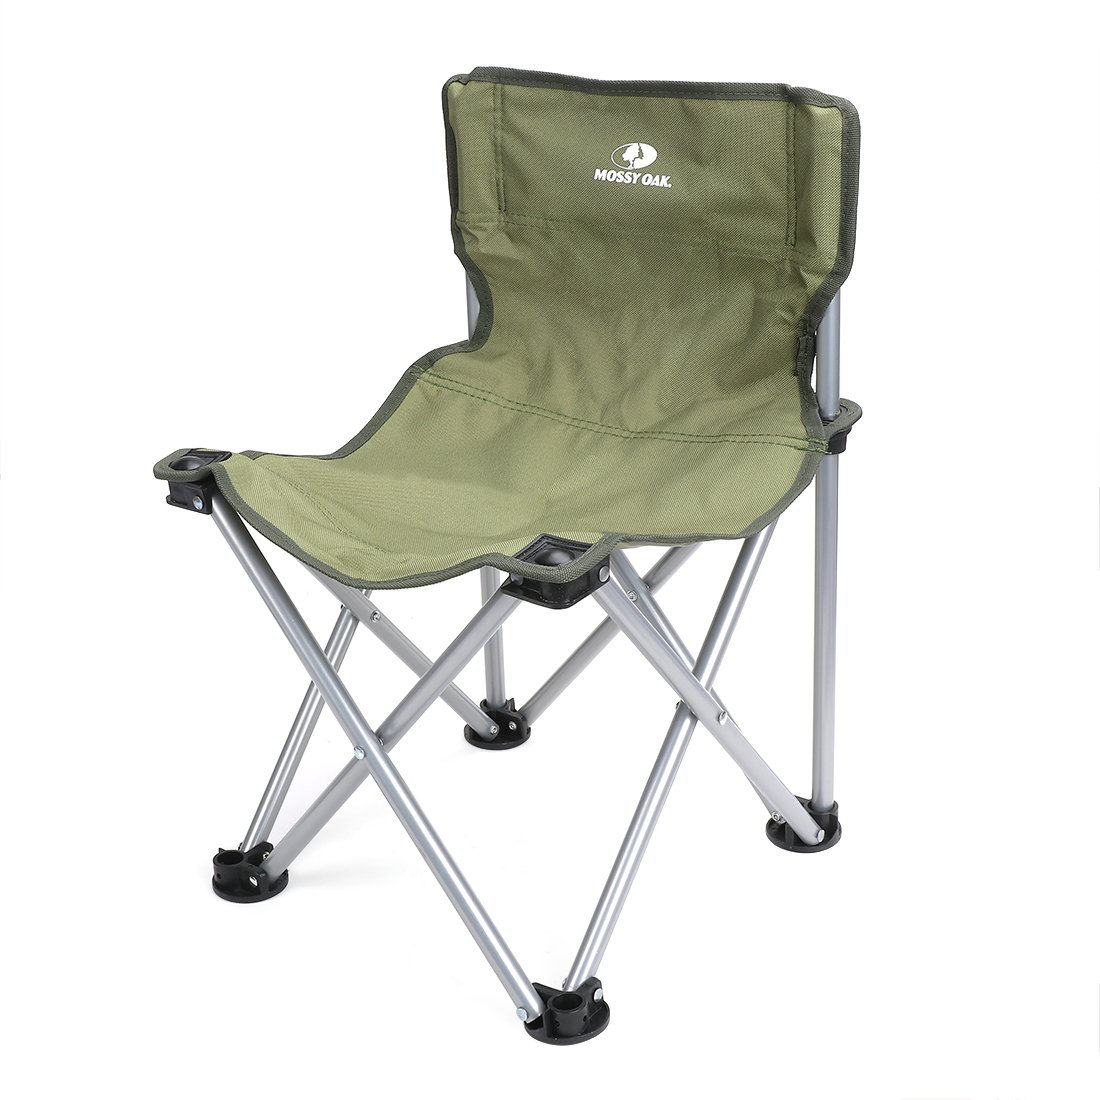 Mossy Oak Folding Camping Chair Mini Backrest Stool Lightweight Portable with Carry Bag,Green,Max Load 220 Lbs, 20.5 x 14 x 13 inch Hang Zhou Great Star Industrial Co. LTD